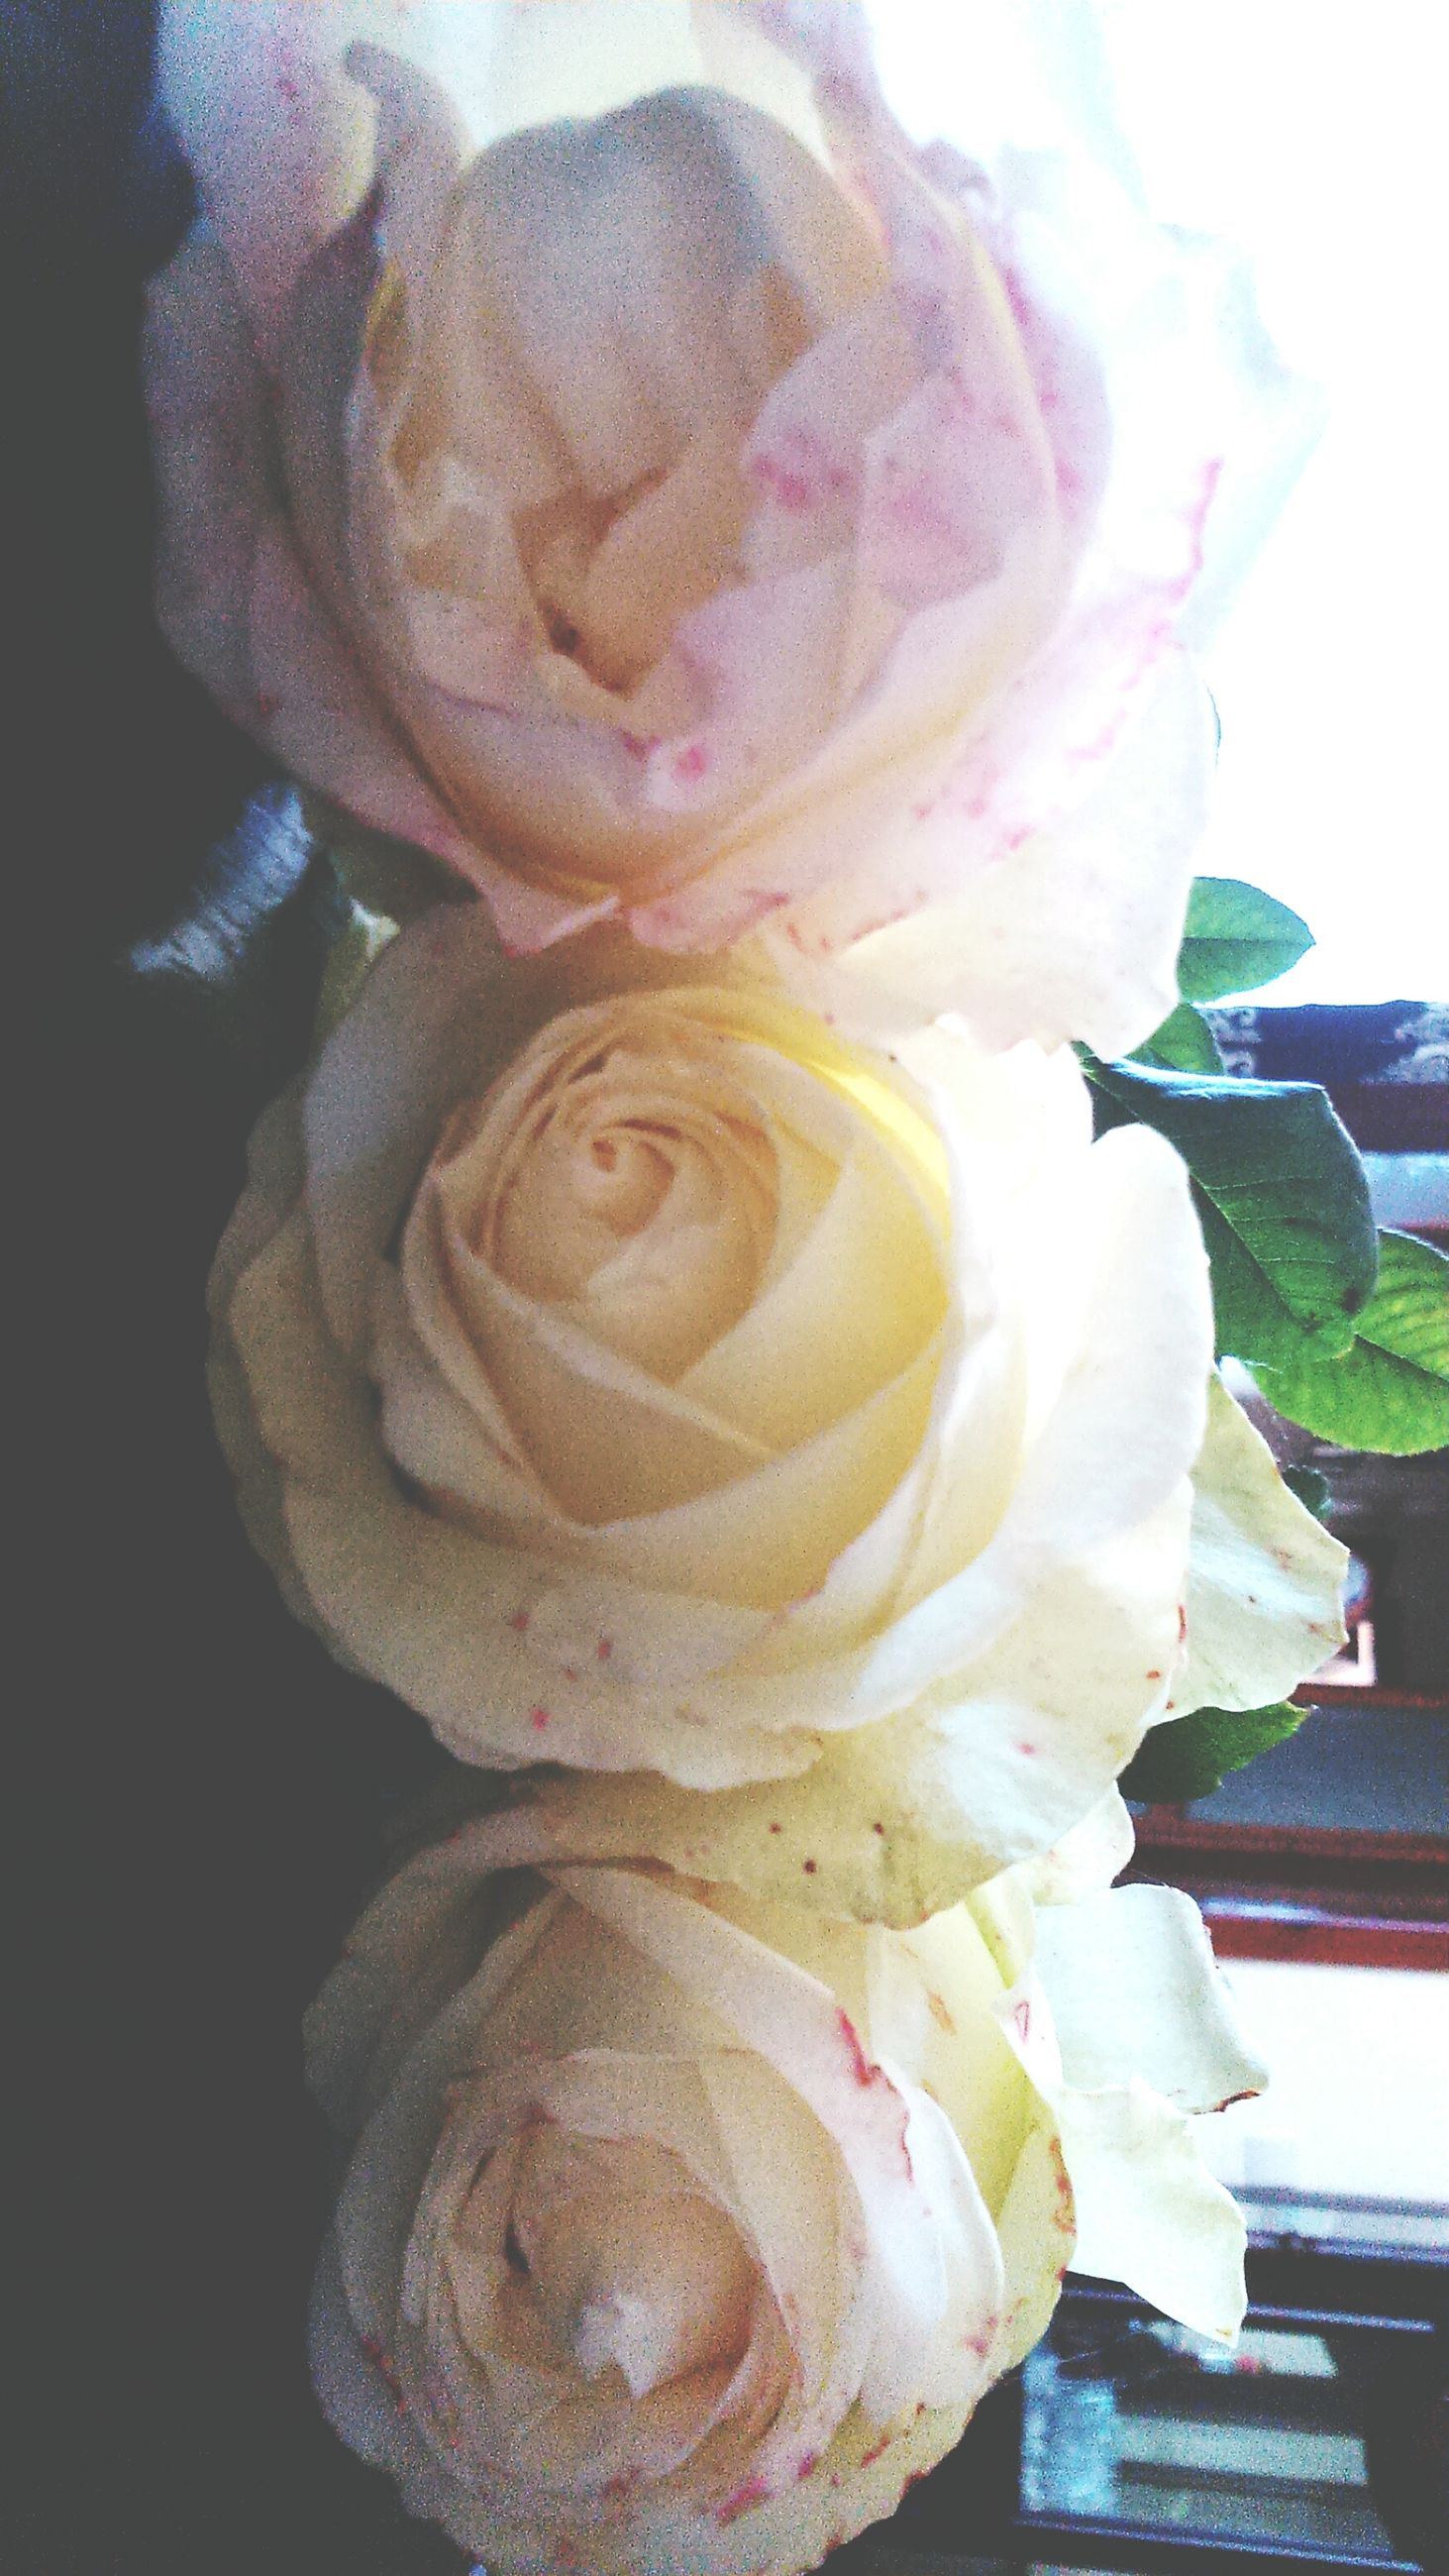 flower, petal, freshness, flower head, rose - flower, fragility, close-up, indoors, single flower, beauty in nature, nature, rose, no people, plant, growth, vase, blooming, day, focus on foreground